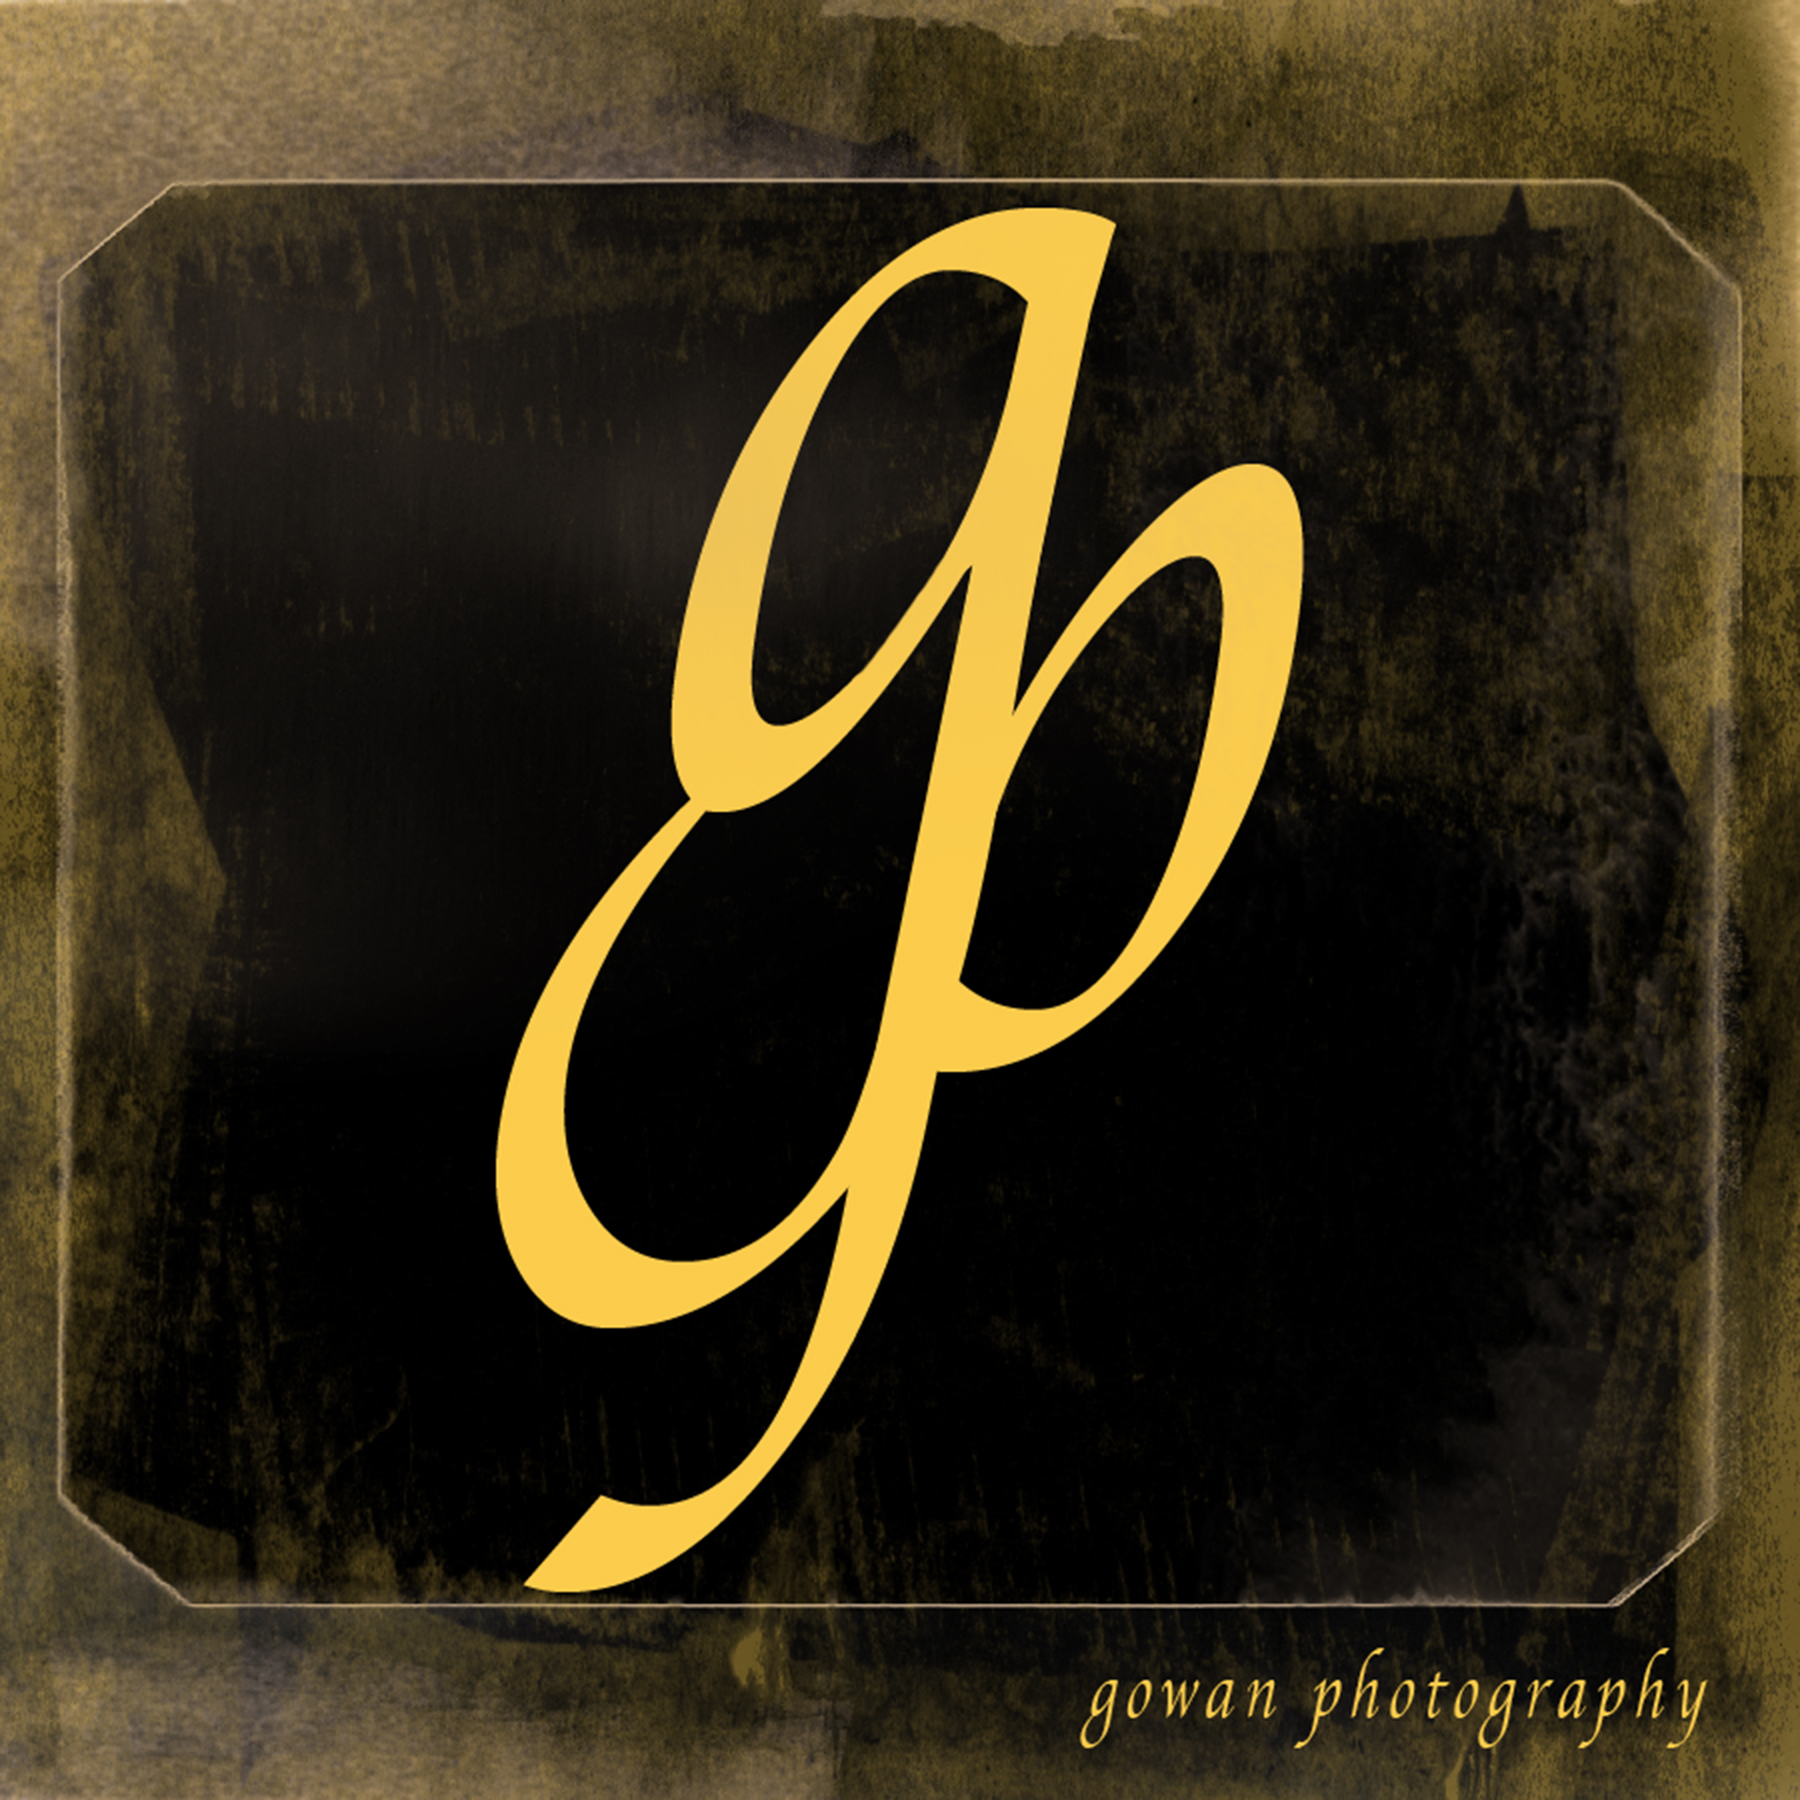 gowan photography